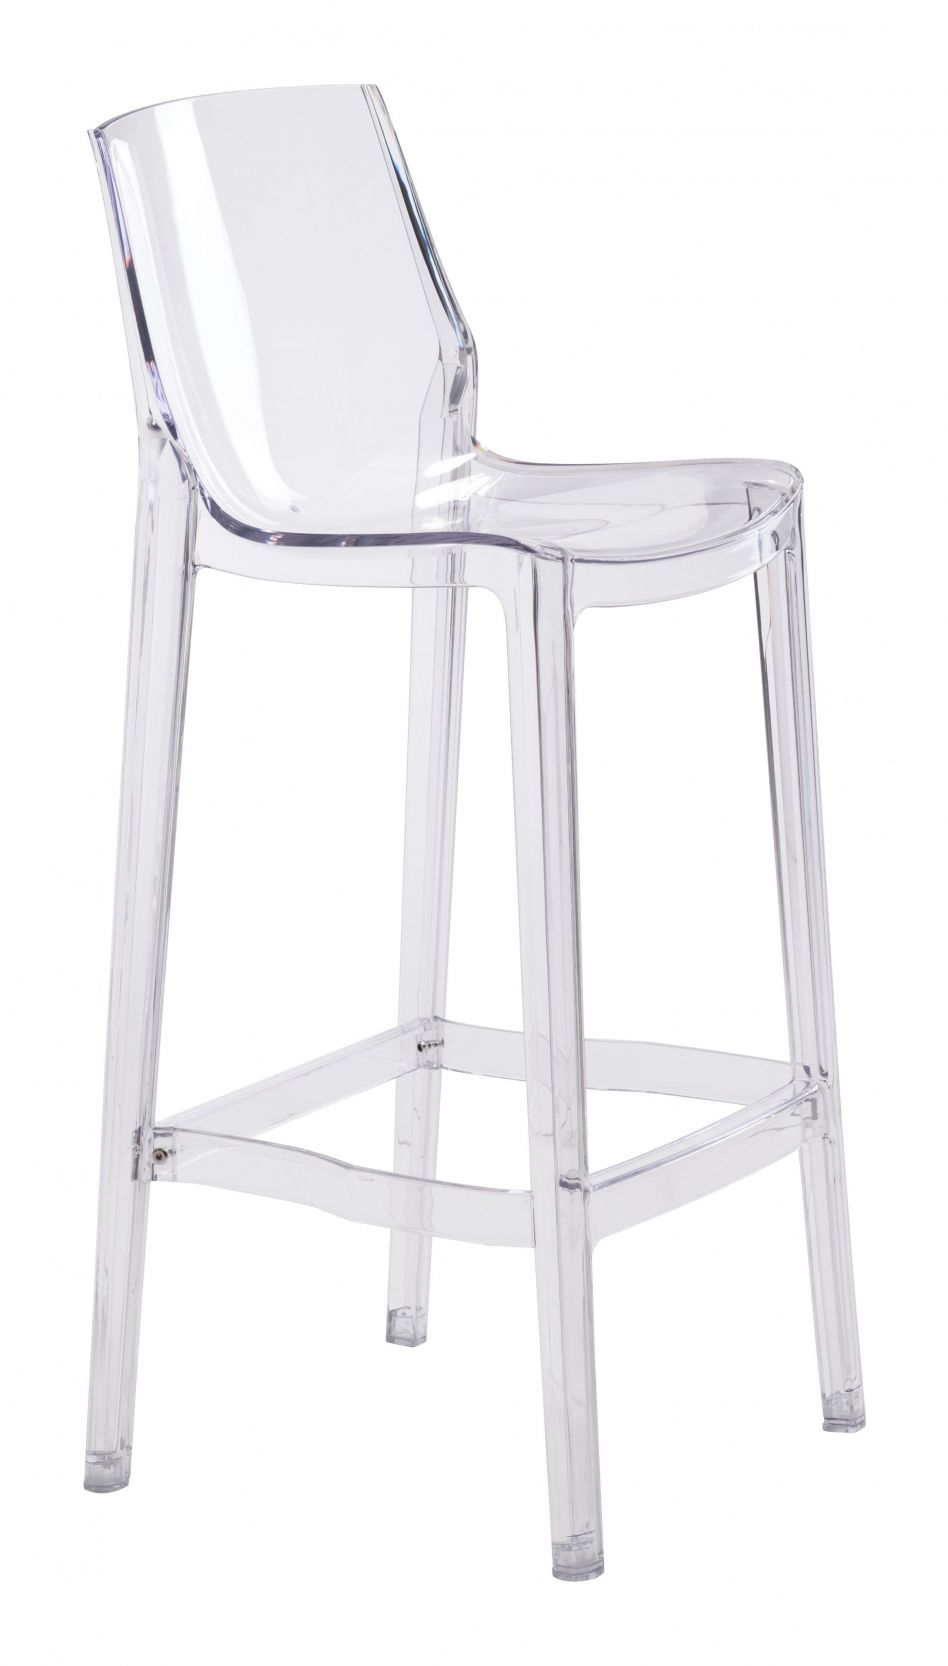 55 acrylic bar stools with back modern wood furniture check more at http